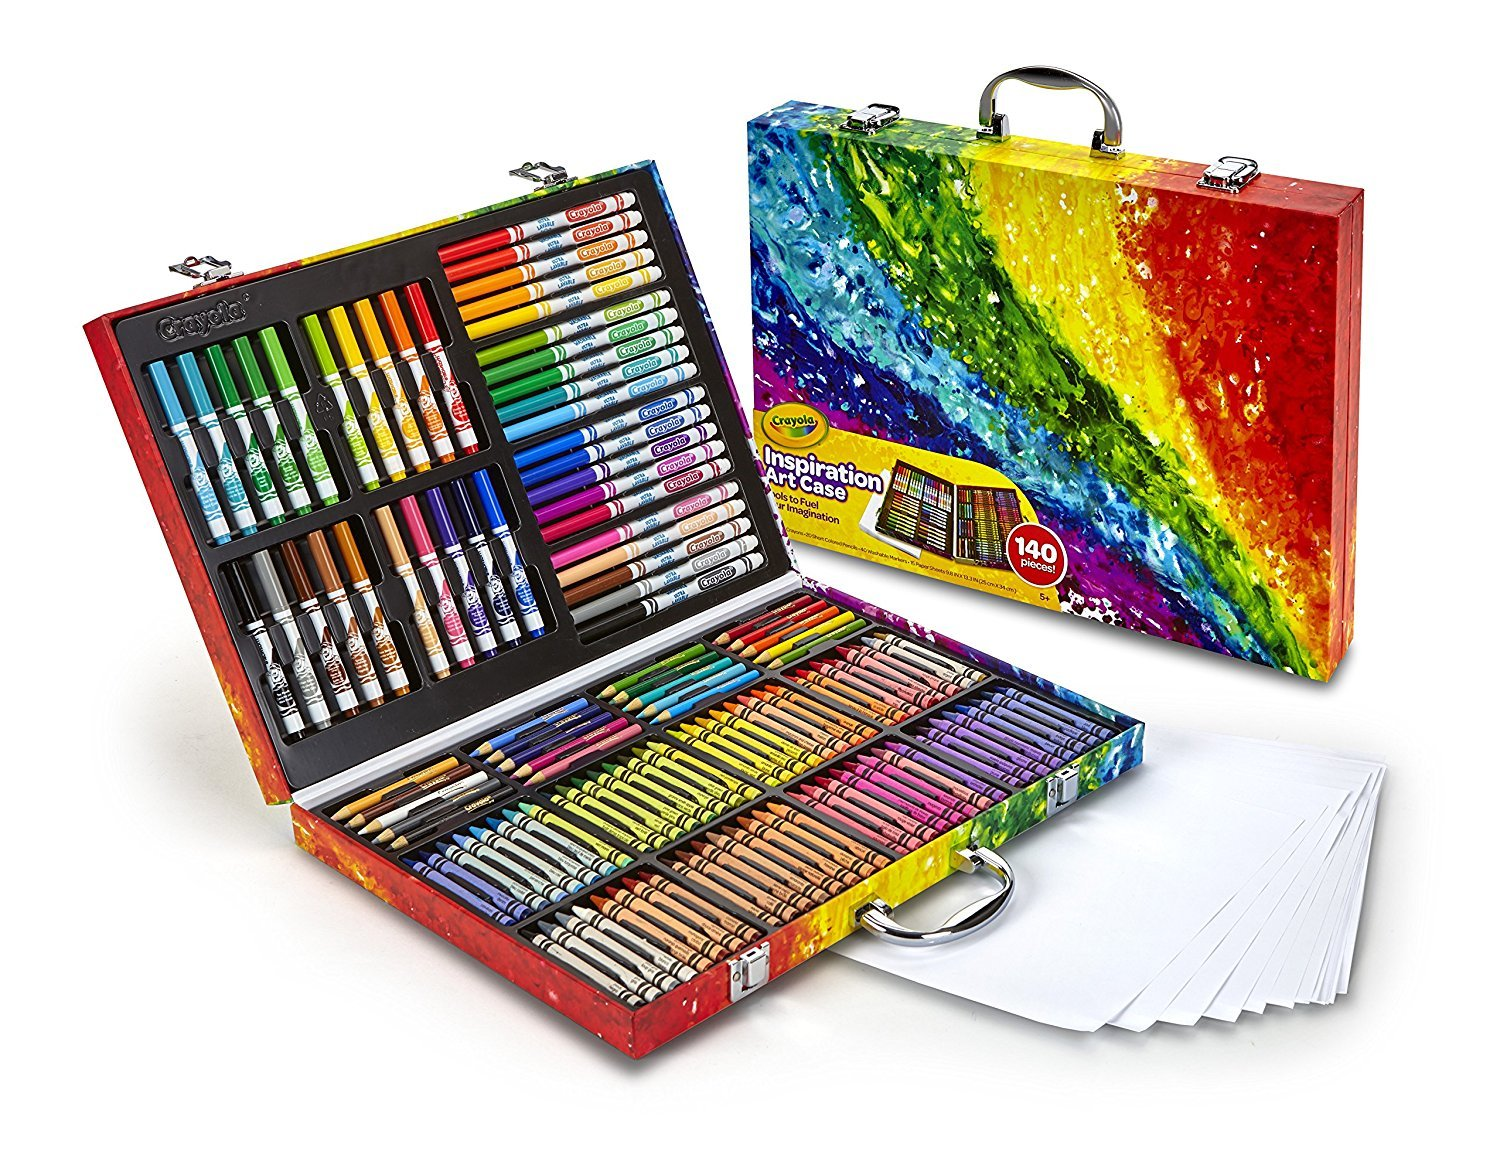 Crayola Inspiration Art Case: 140 Pieces, Art Set, Gifts for Kids, Age 4, 5, 6, by Crayola (Image #7)